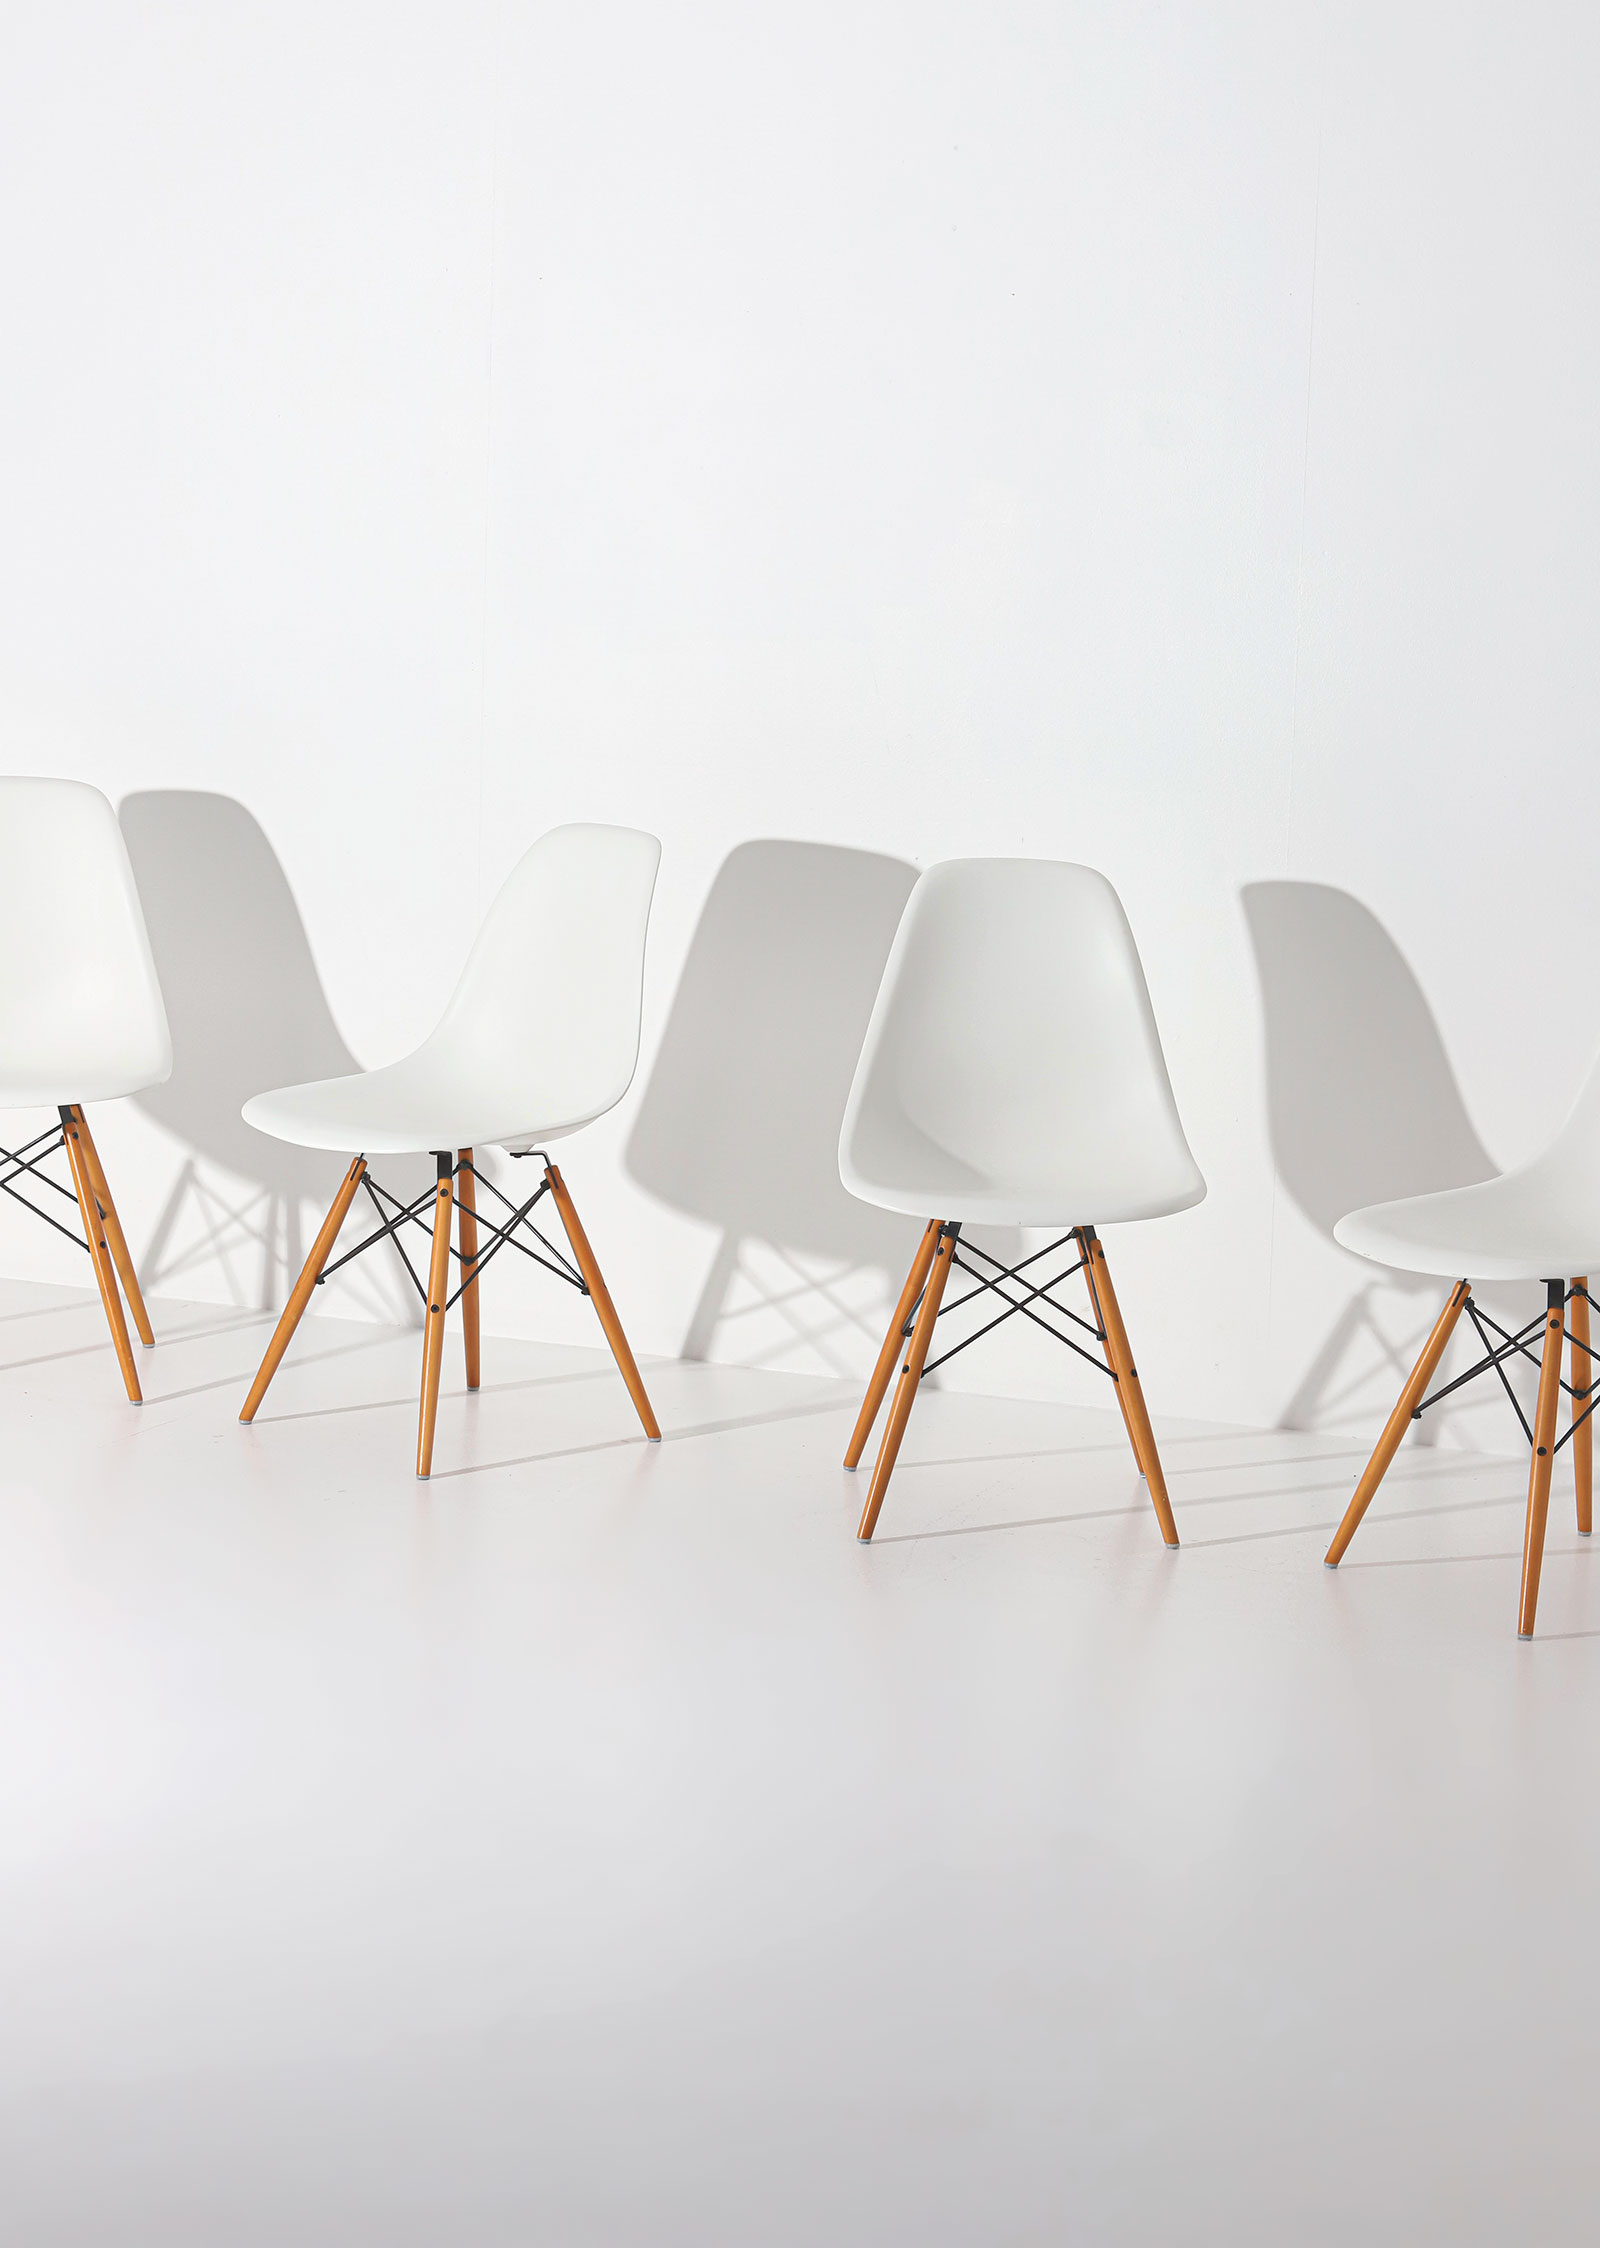 Eames DSW Vitra chairsimage 5